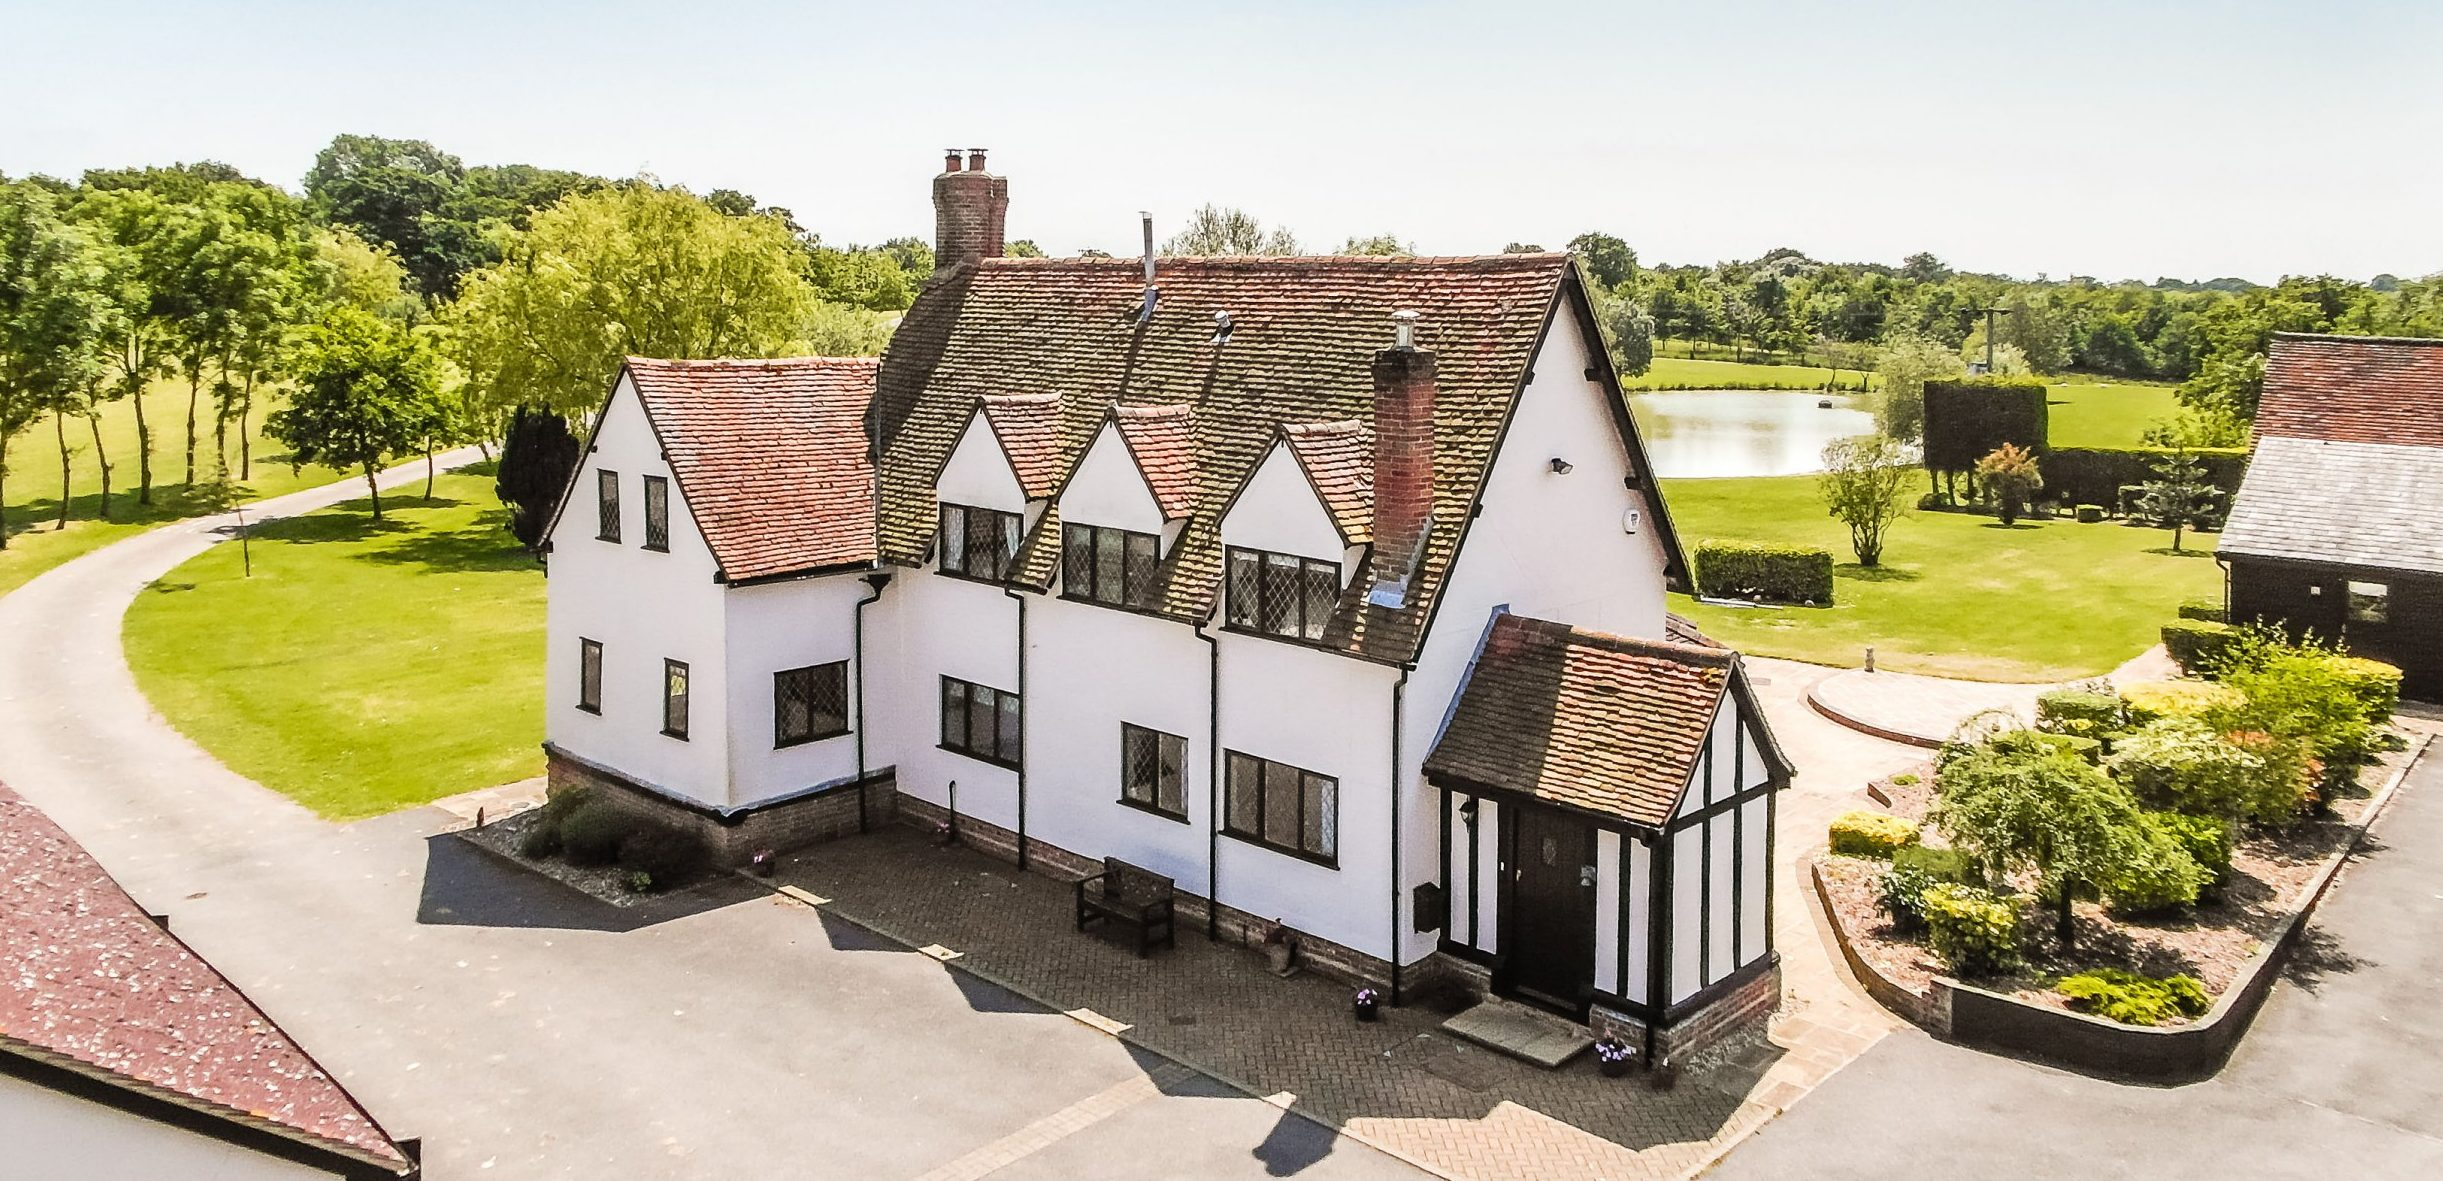 BNPS.co.uk (01202 558833) Pic: Strutt&Parker/BNPS Teenage kicks... Homebuyers with teenage children will never need to worry about how to entertain them again at this spectacular farm - on the market for ?2.85m. Rigery Farm has an indoor swimming pool, stables for horse, a lake for boating, a gym and plenty of space for a trampoline, a tennis court and any other outdoor activities one could want in its 50 acres of parkland. And for the adults the property, on the outskirts of Colliers End, Herts, is a charming Grade II listed farmhouse within commuting distance of central London.